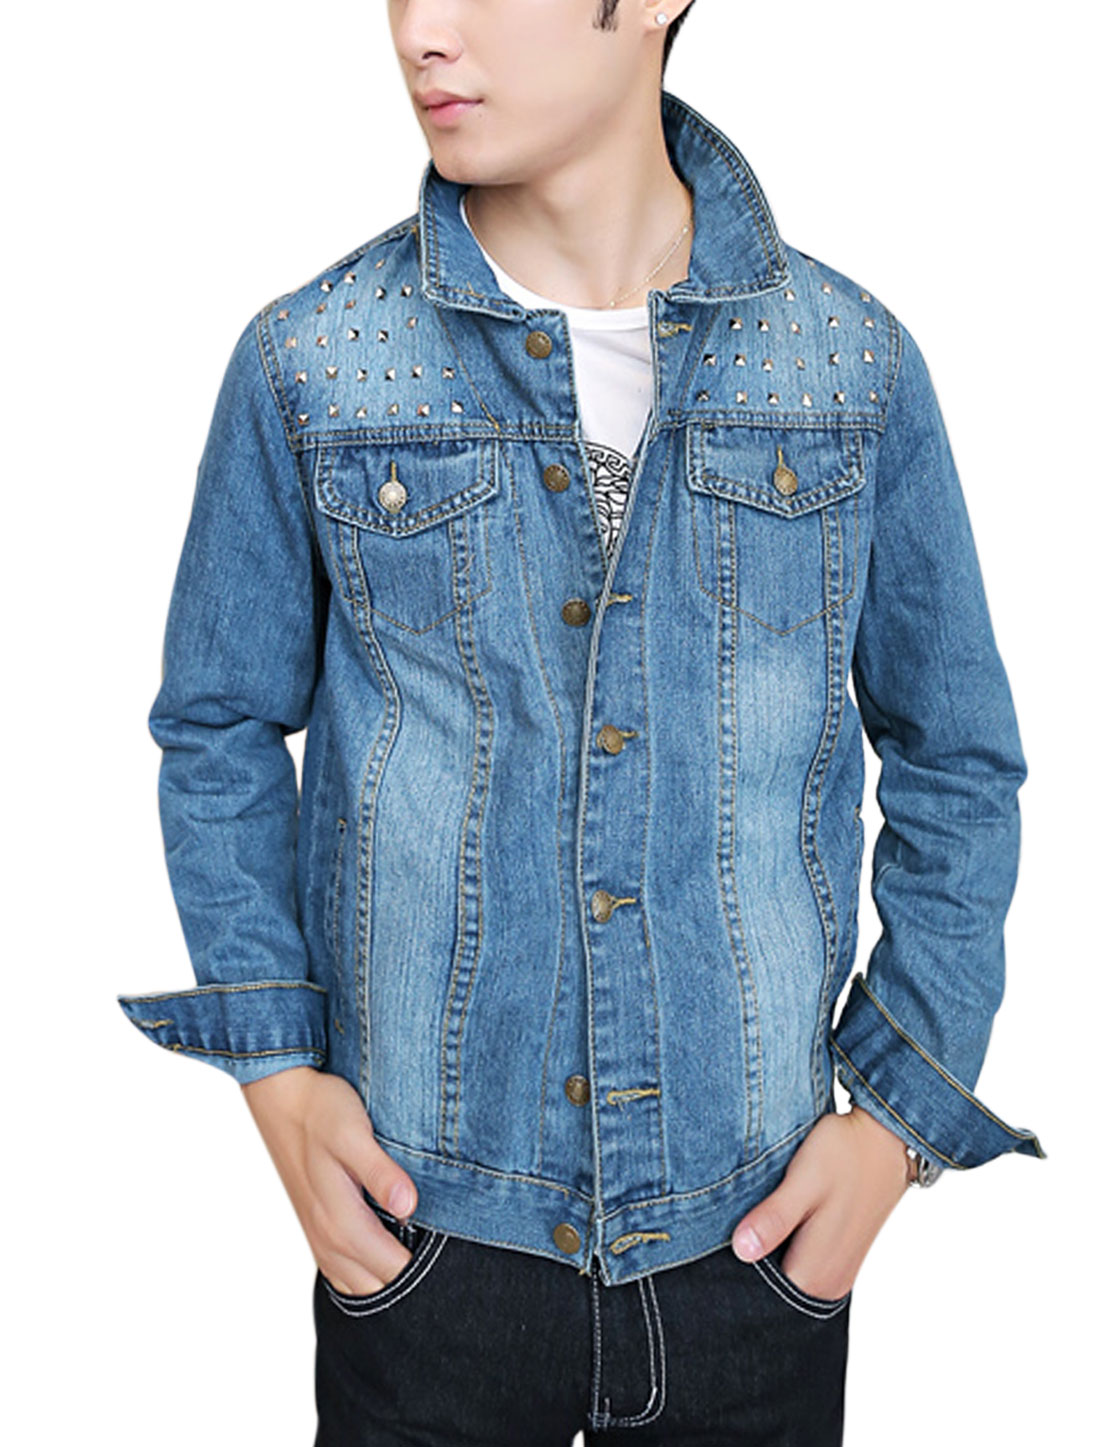 Men Point Collar Signle Breasted Studs Embellished Decor Casual Jean Jacket Light Blue M